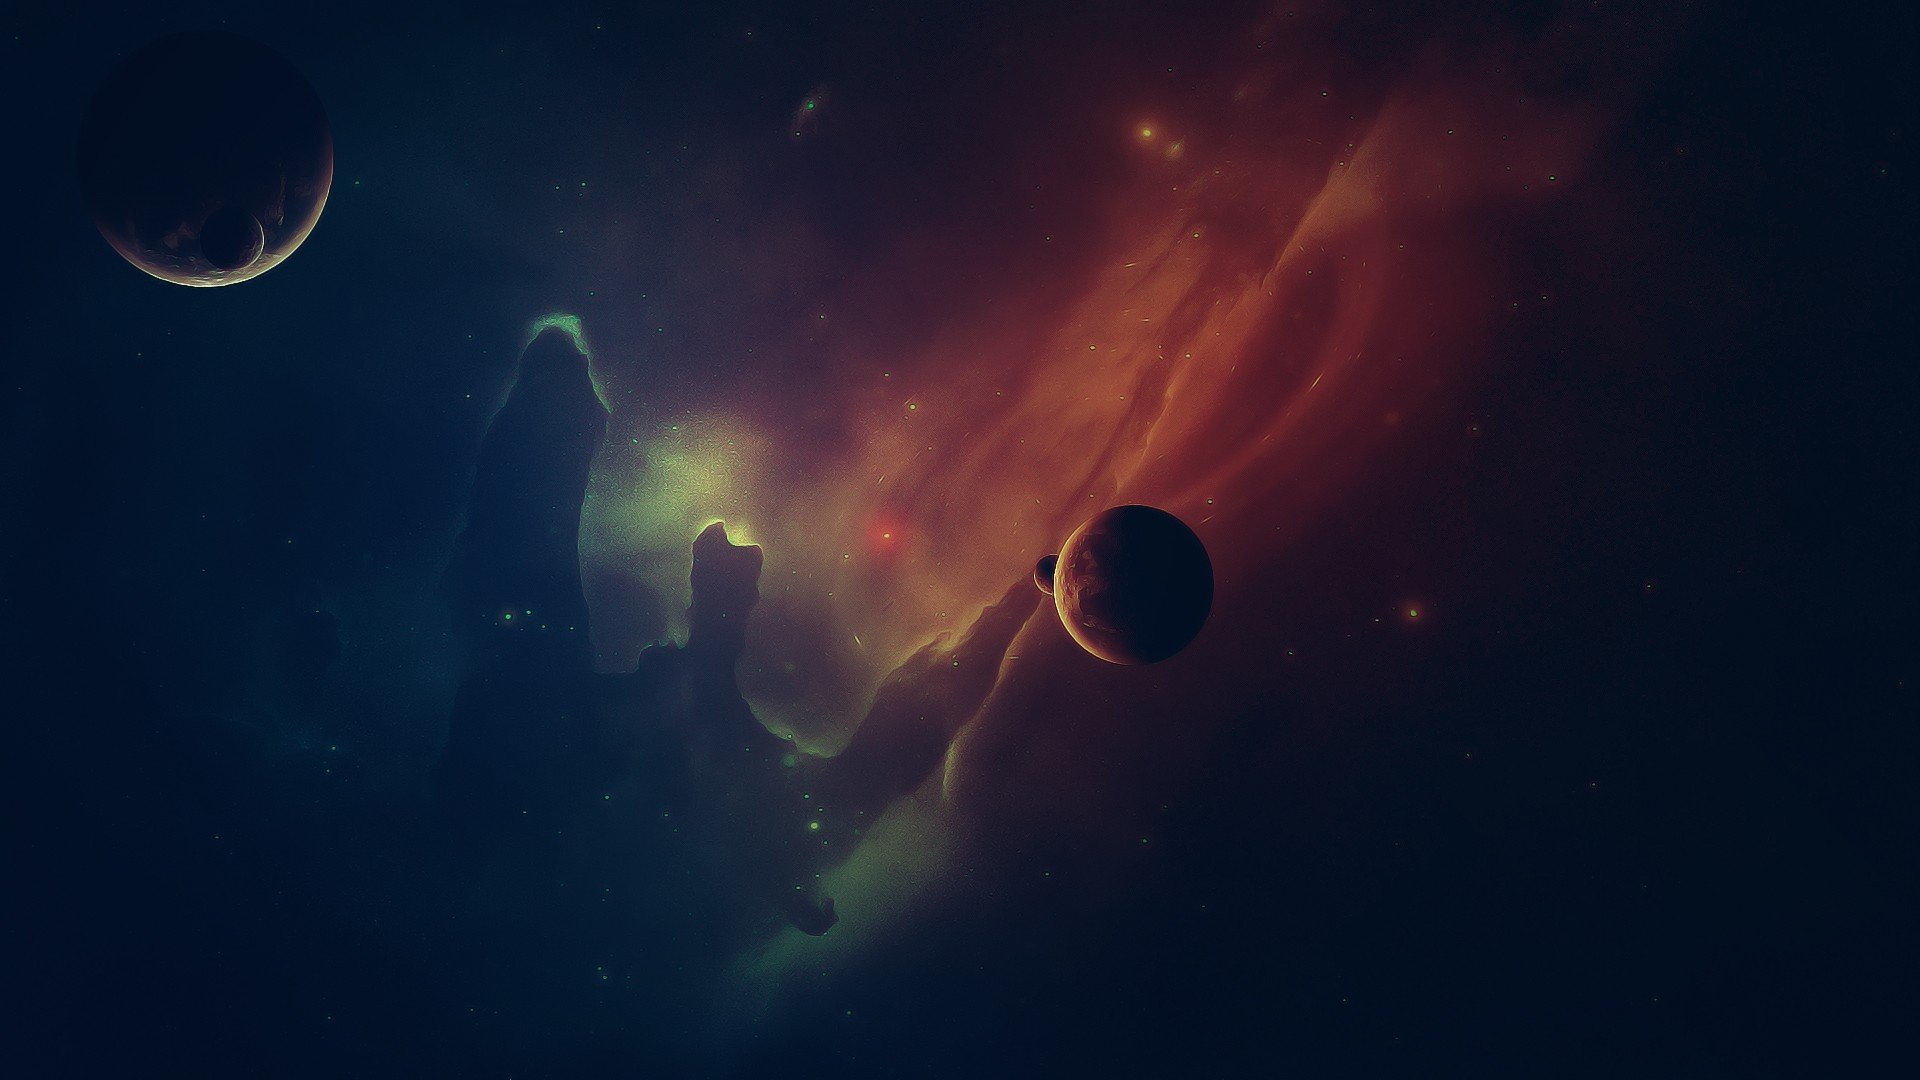 Outer space stars galaxies planets nebulae space wallpaper ...